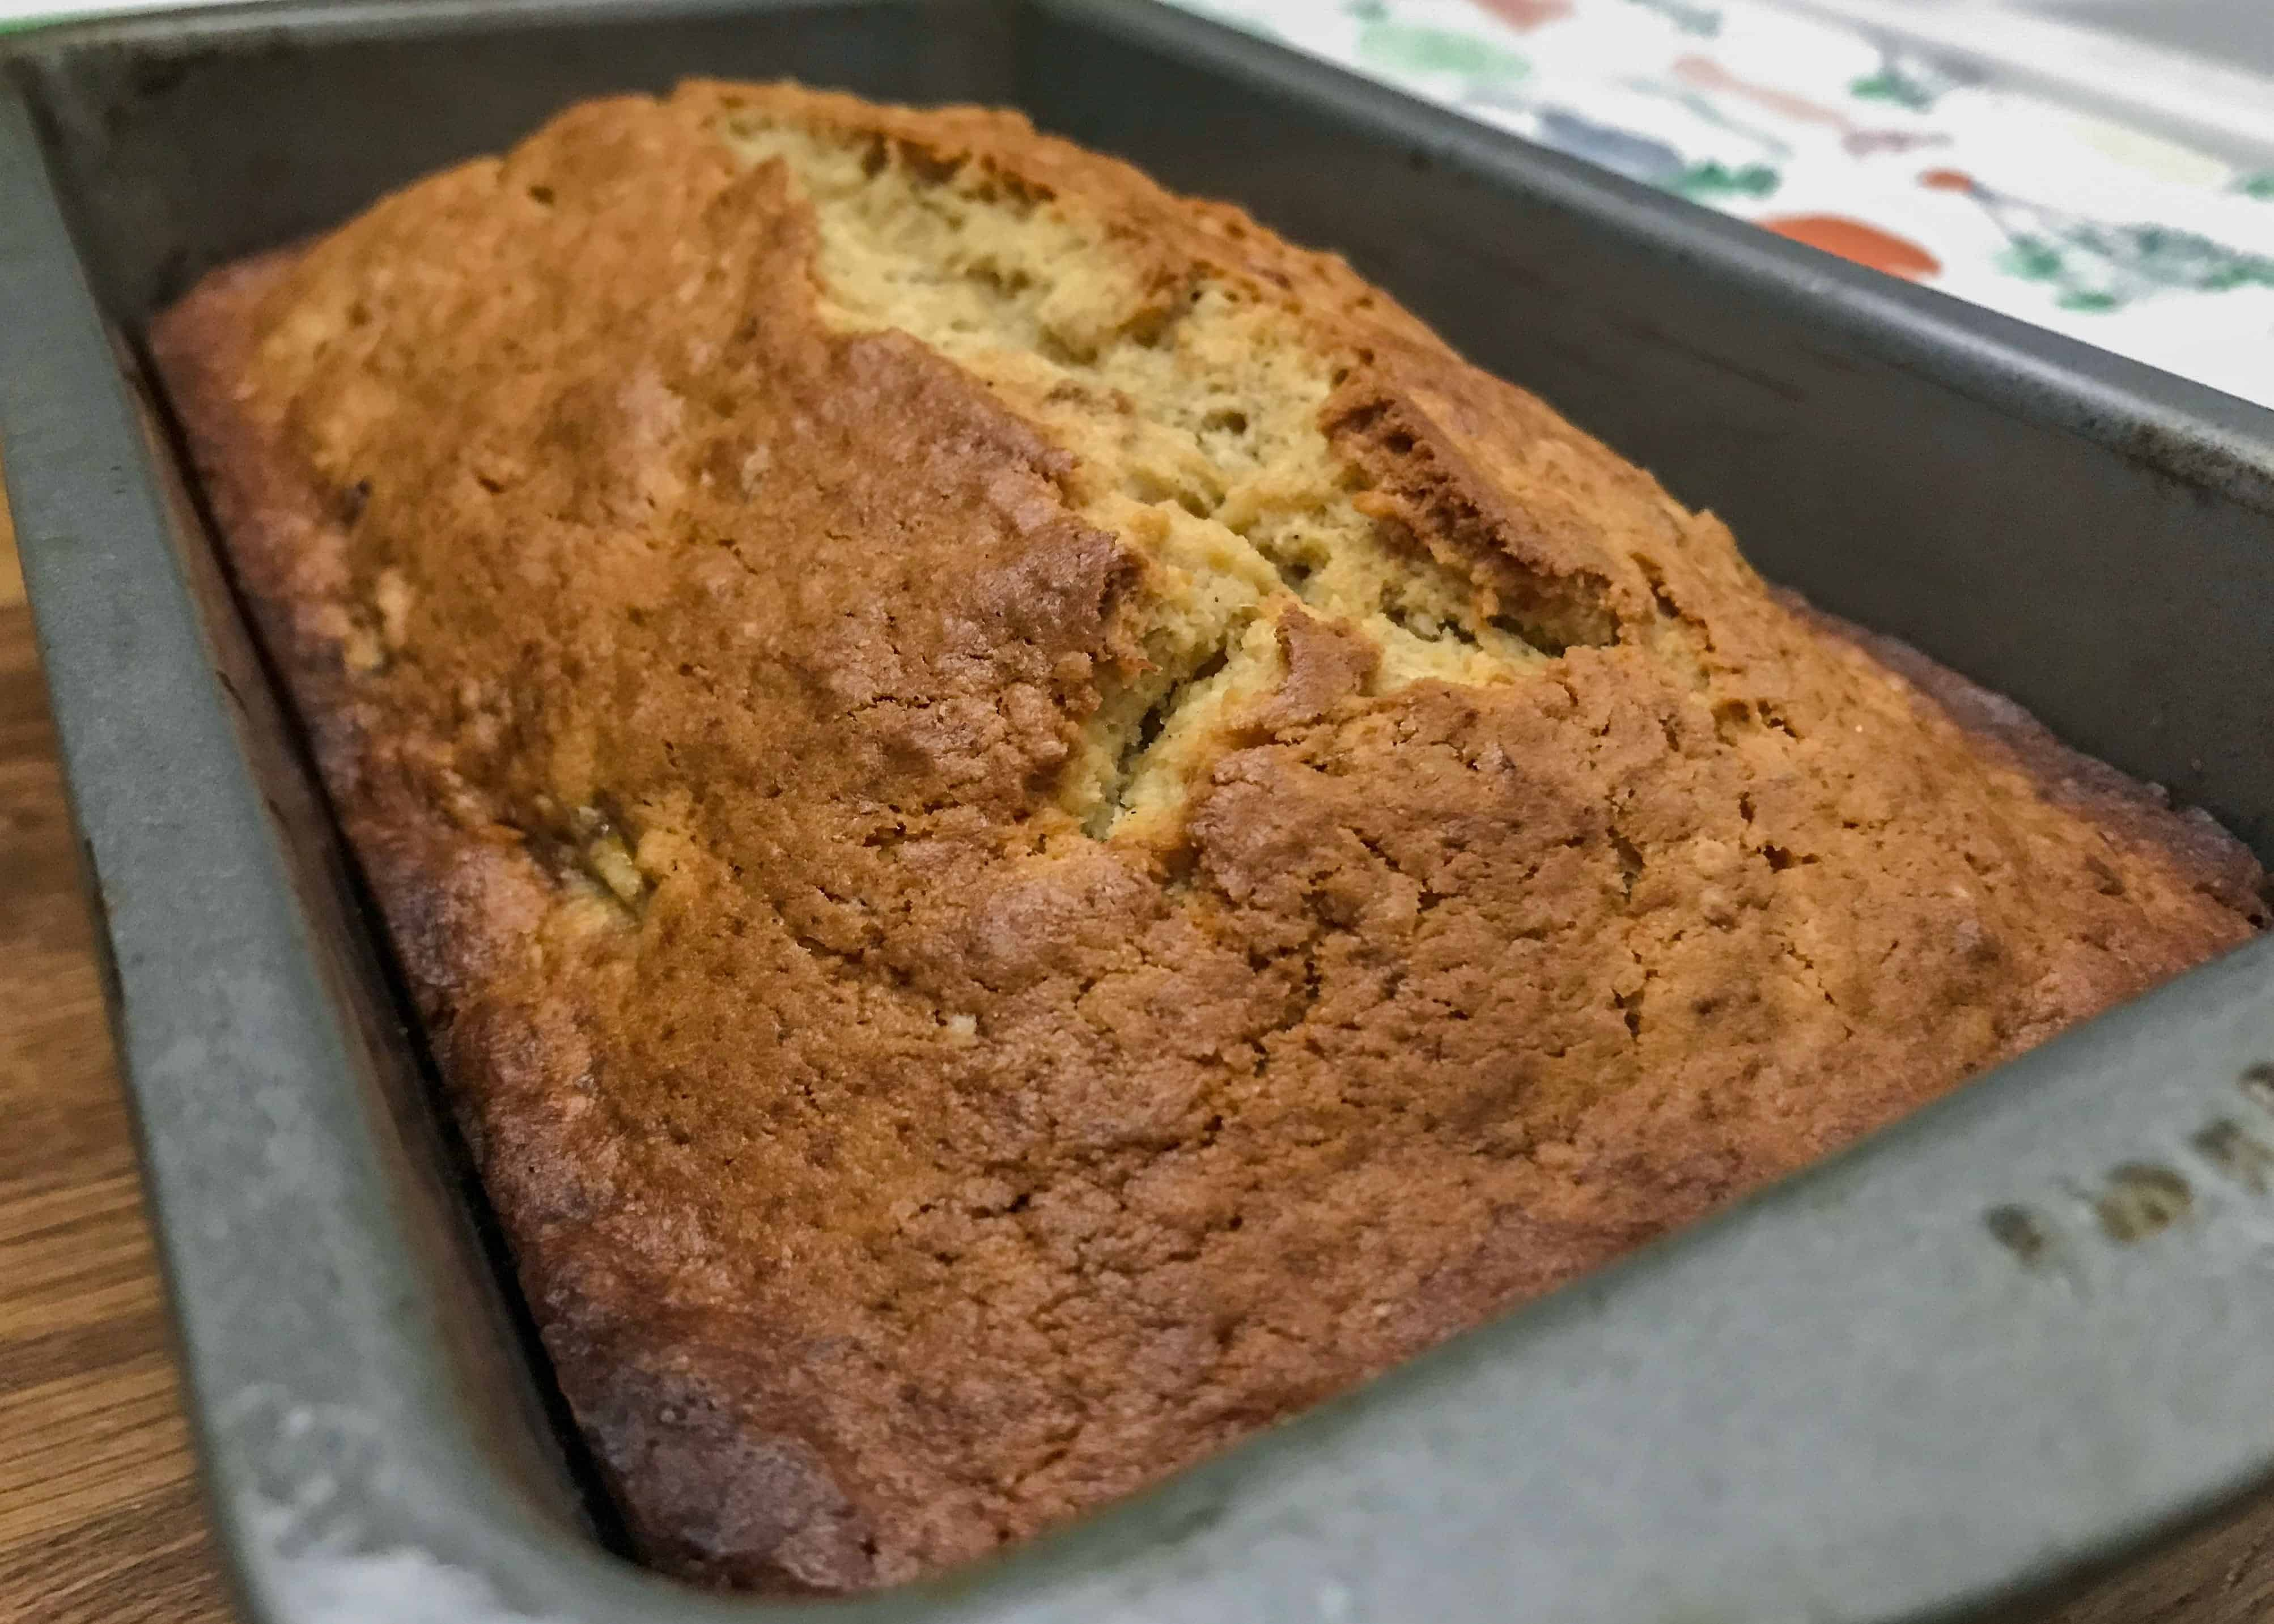 Fresh loaf of cream cheese banana nut bread in bread ban.